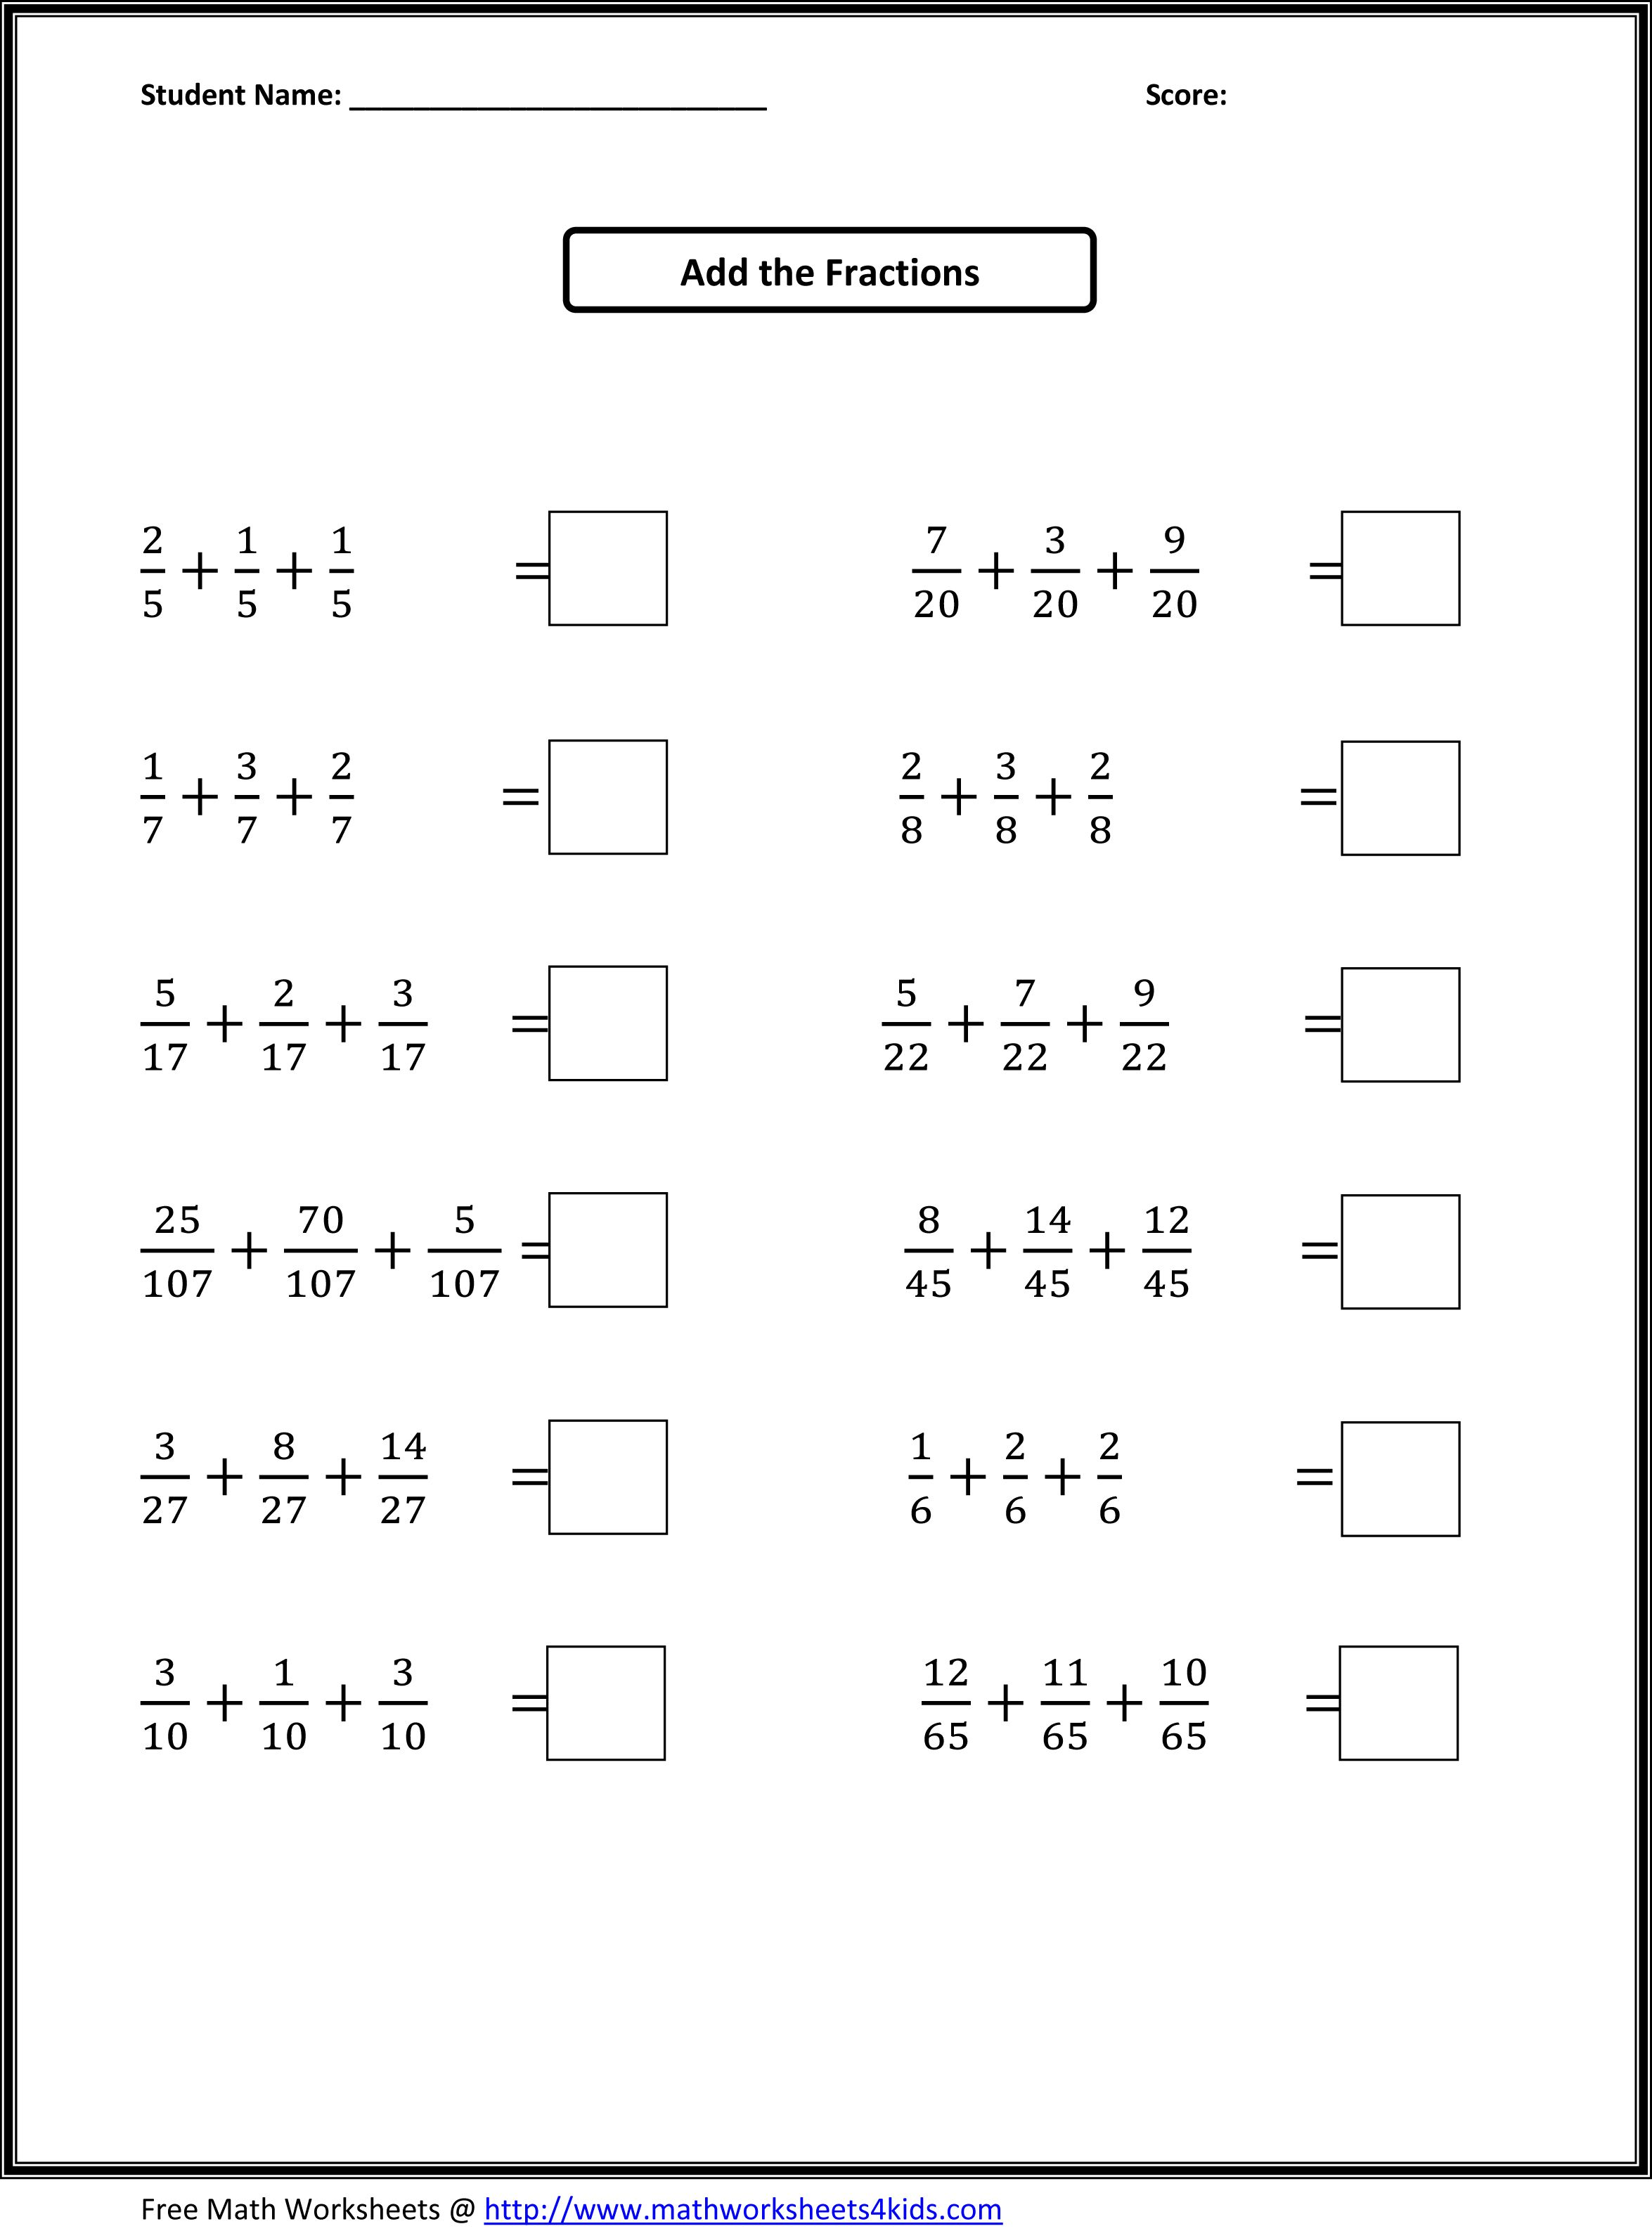 Worksheets for all early ed grades All topics of math – Worksheets for Adding Fractions